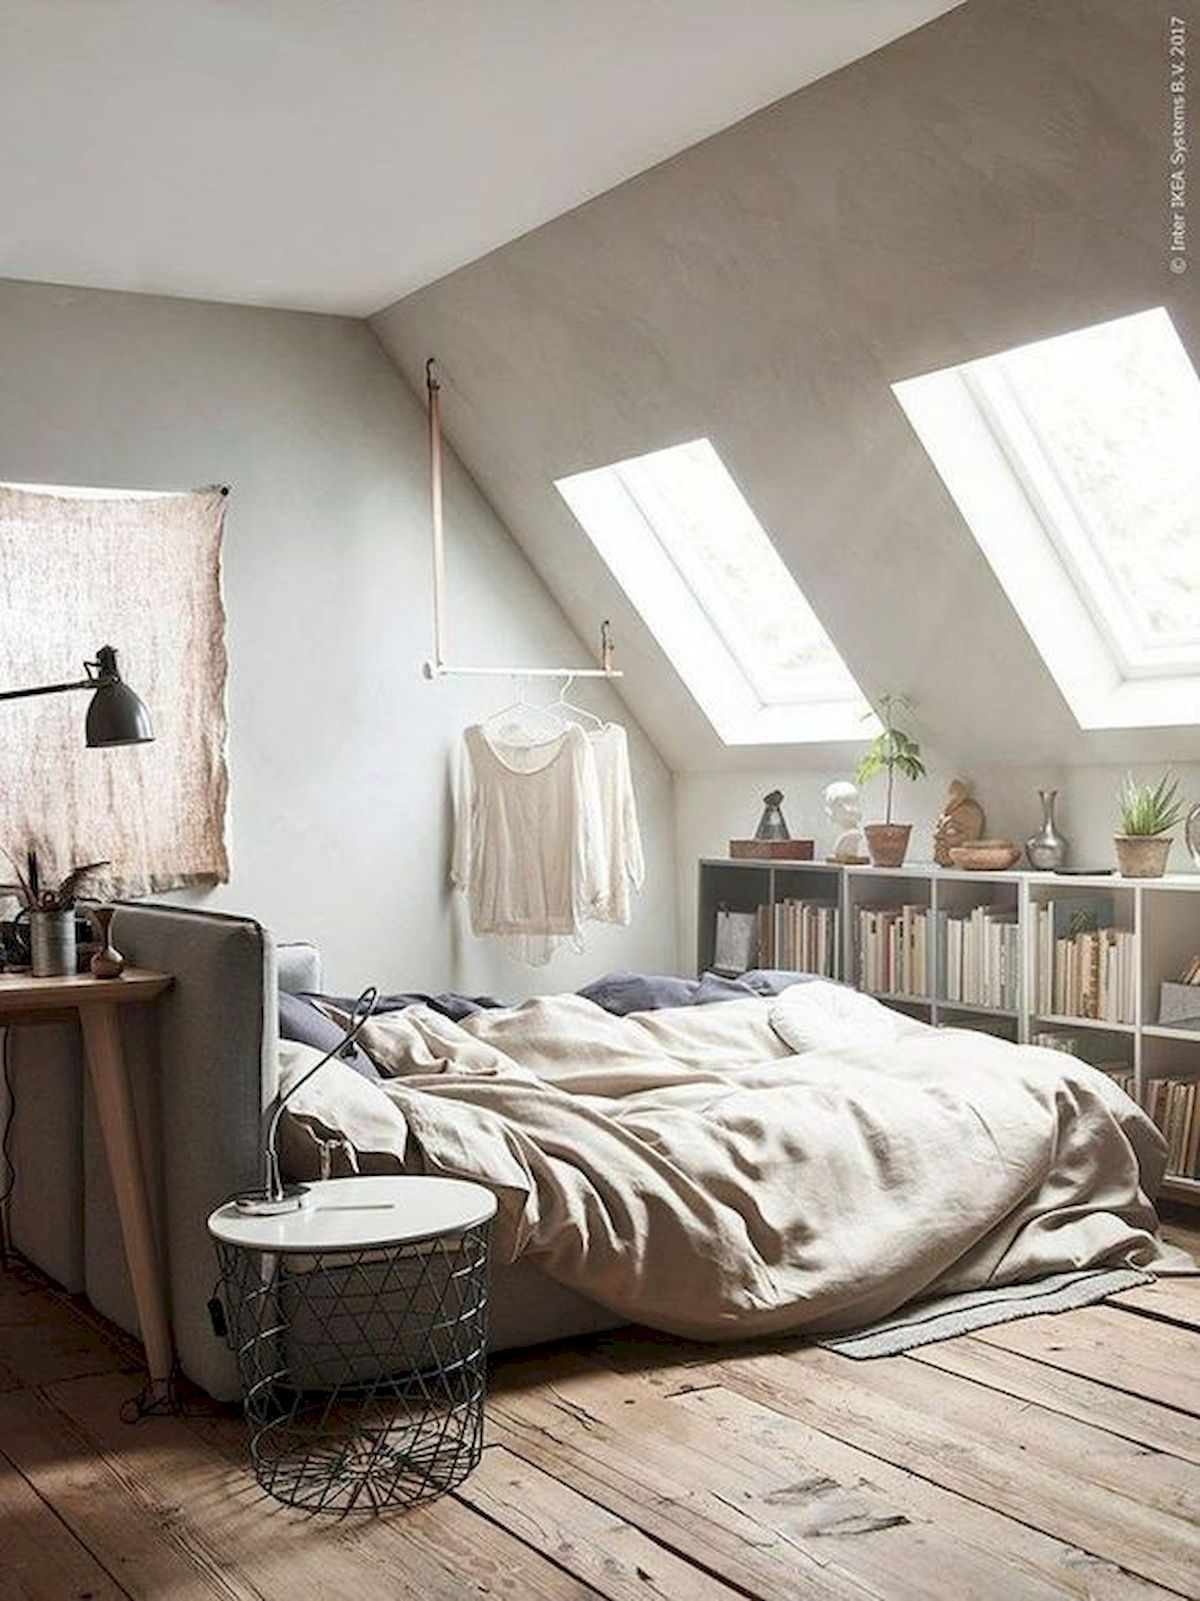 40 Awesome Attic Bedroom Design and Decorating Ideas (8)